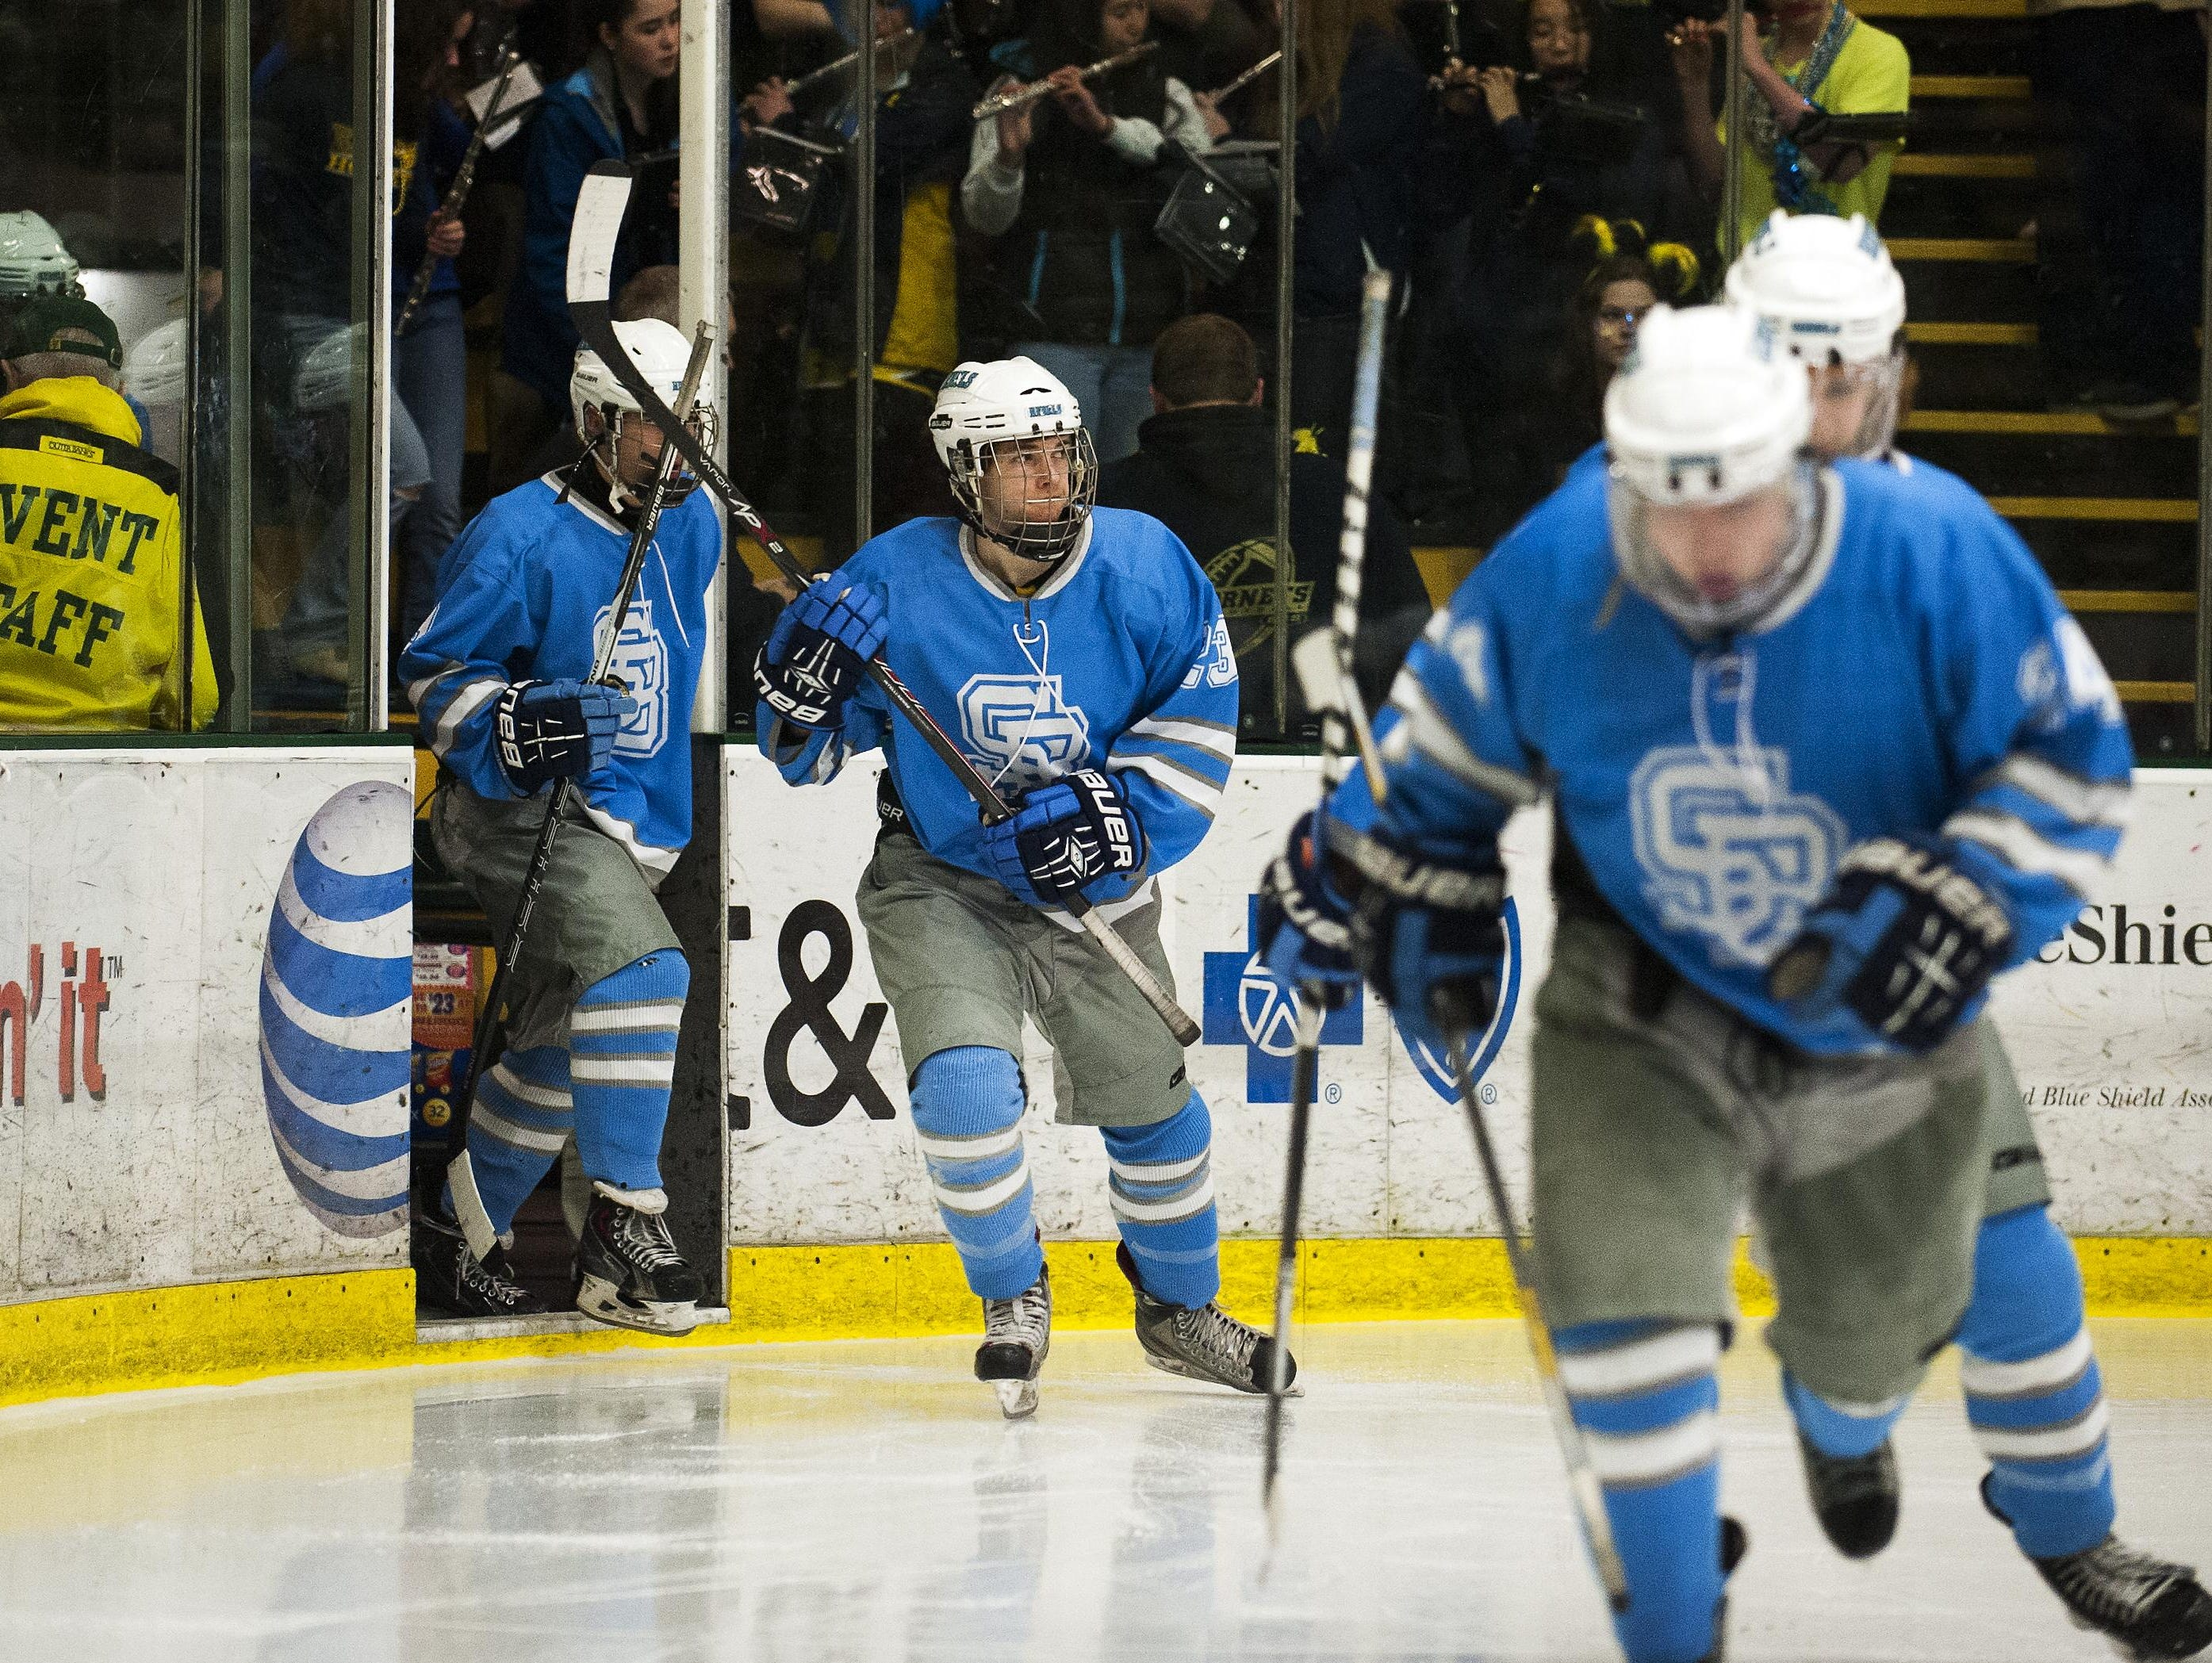 South Burlington takes the ice for the third overtime period during the division I high school boys hockey championship between the South Burlington Rebels and the Essex Hornets at Gutterson Fieldhouse on March 9.